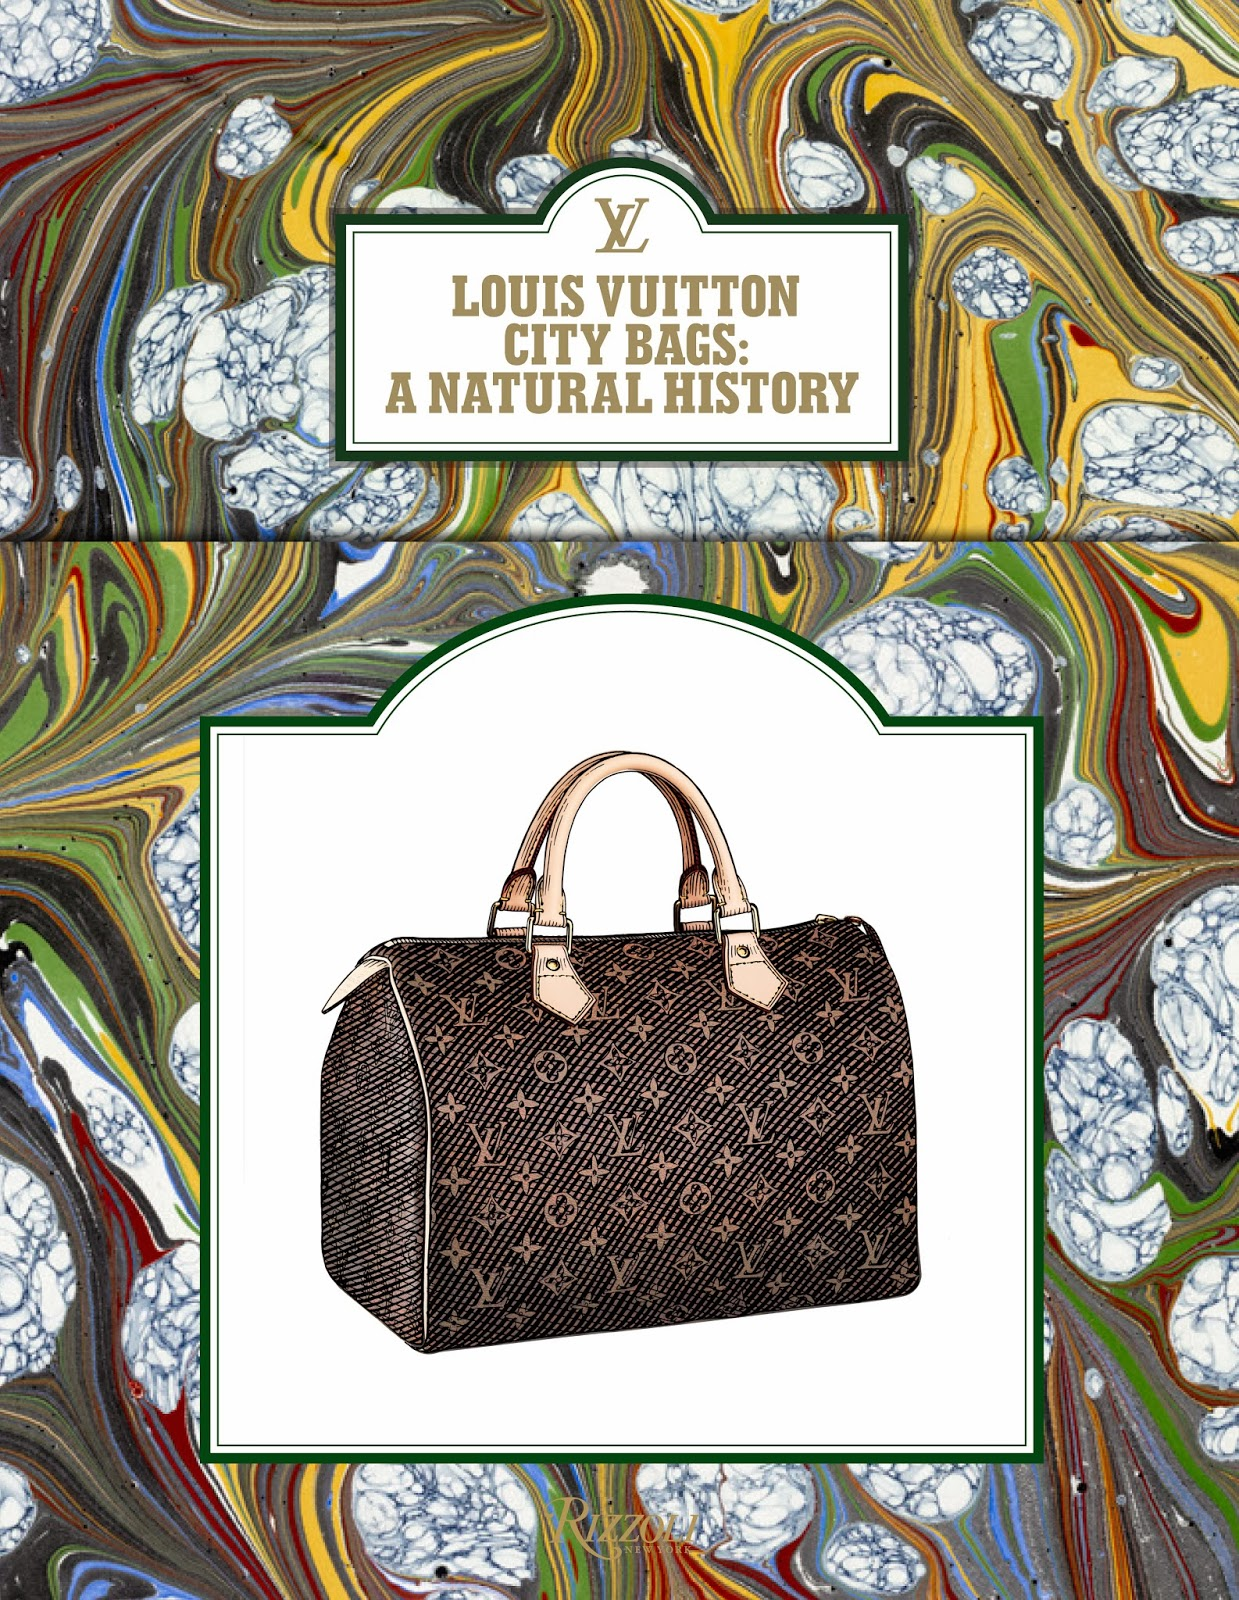 political style in review louis vuitton city bags. Black Bedroom Furniture Sets. Home Design Ideas